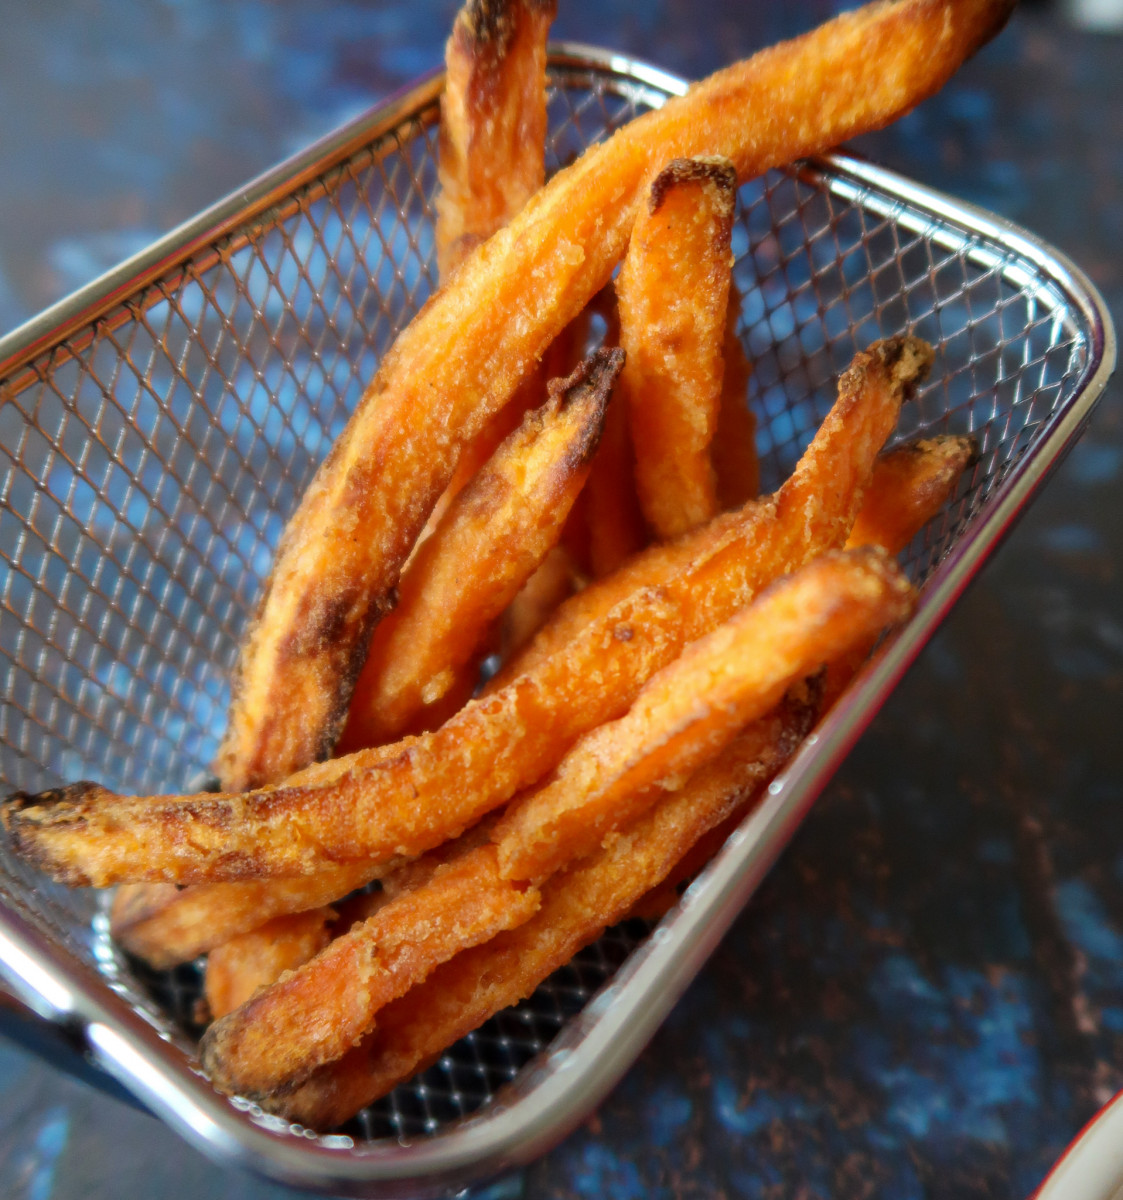 Frozen sweet potato fries cooked in the air fryer served in a metal basket with a Le Creuset ramekin of tomato ketchup